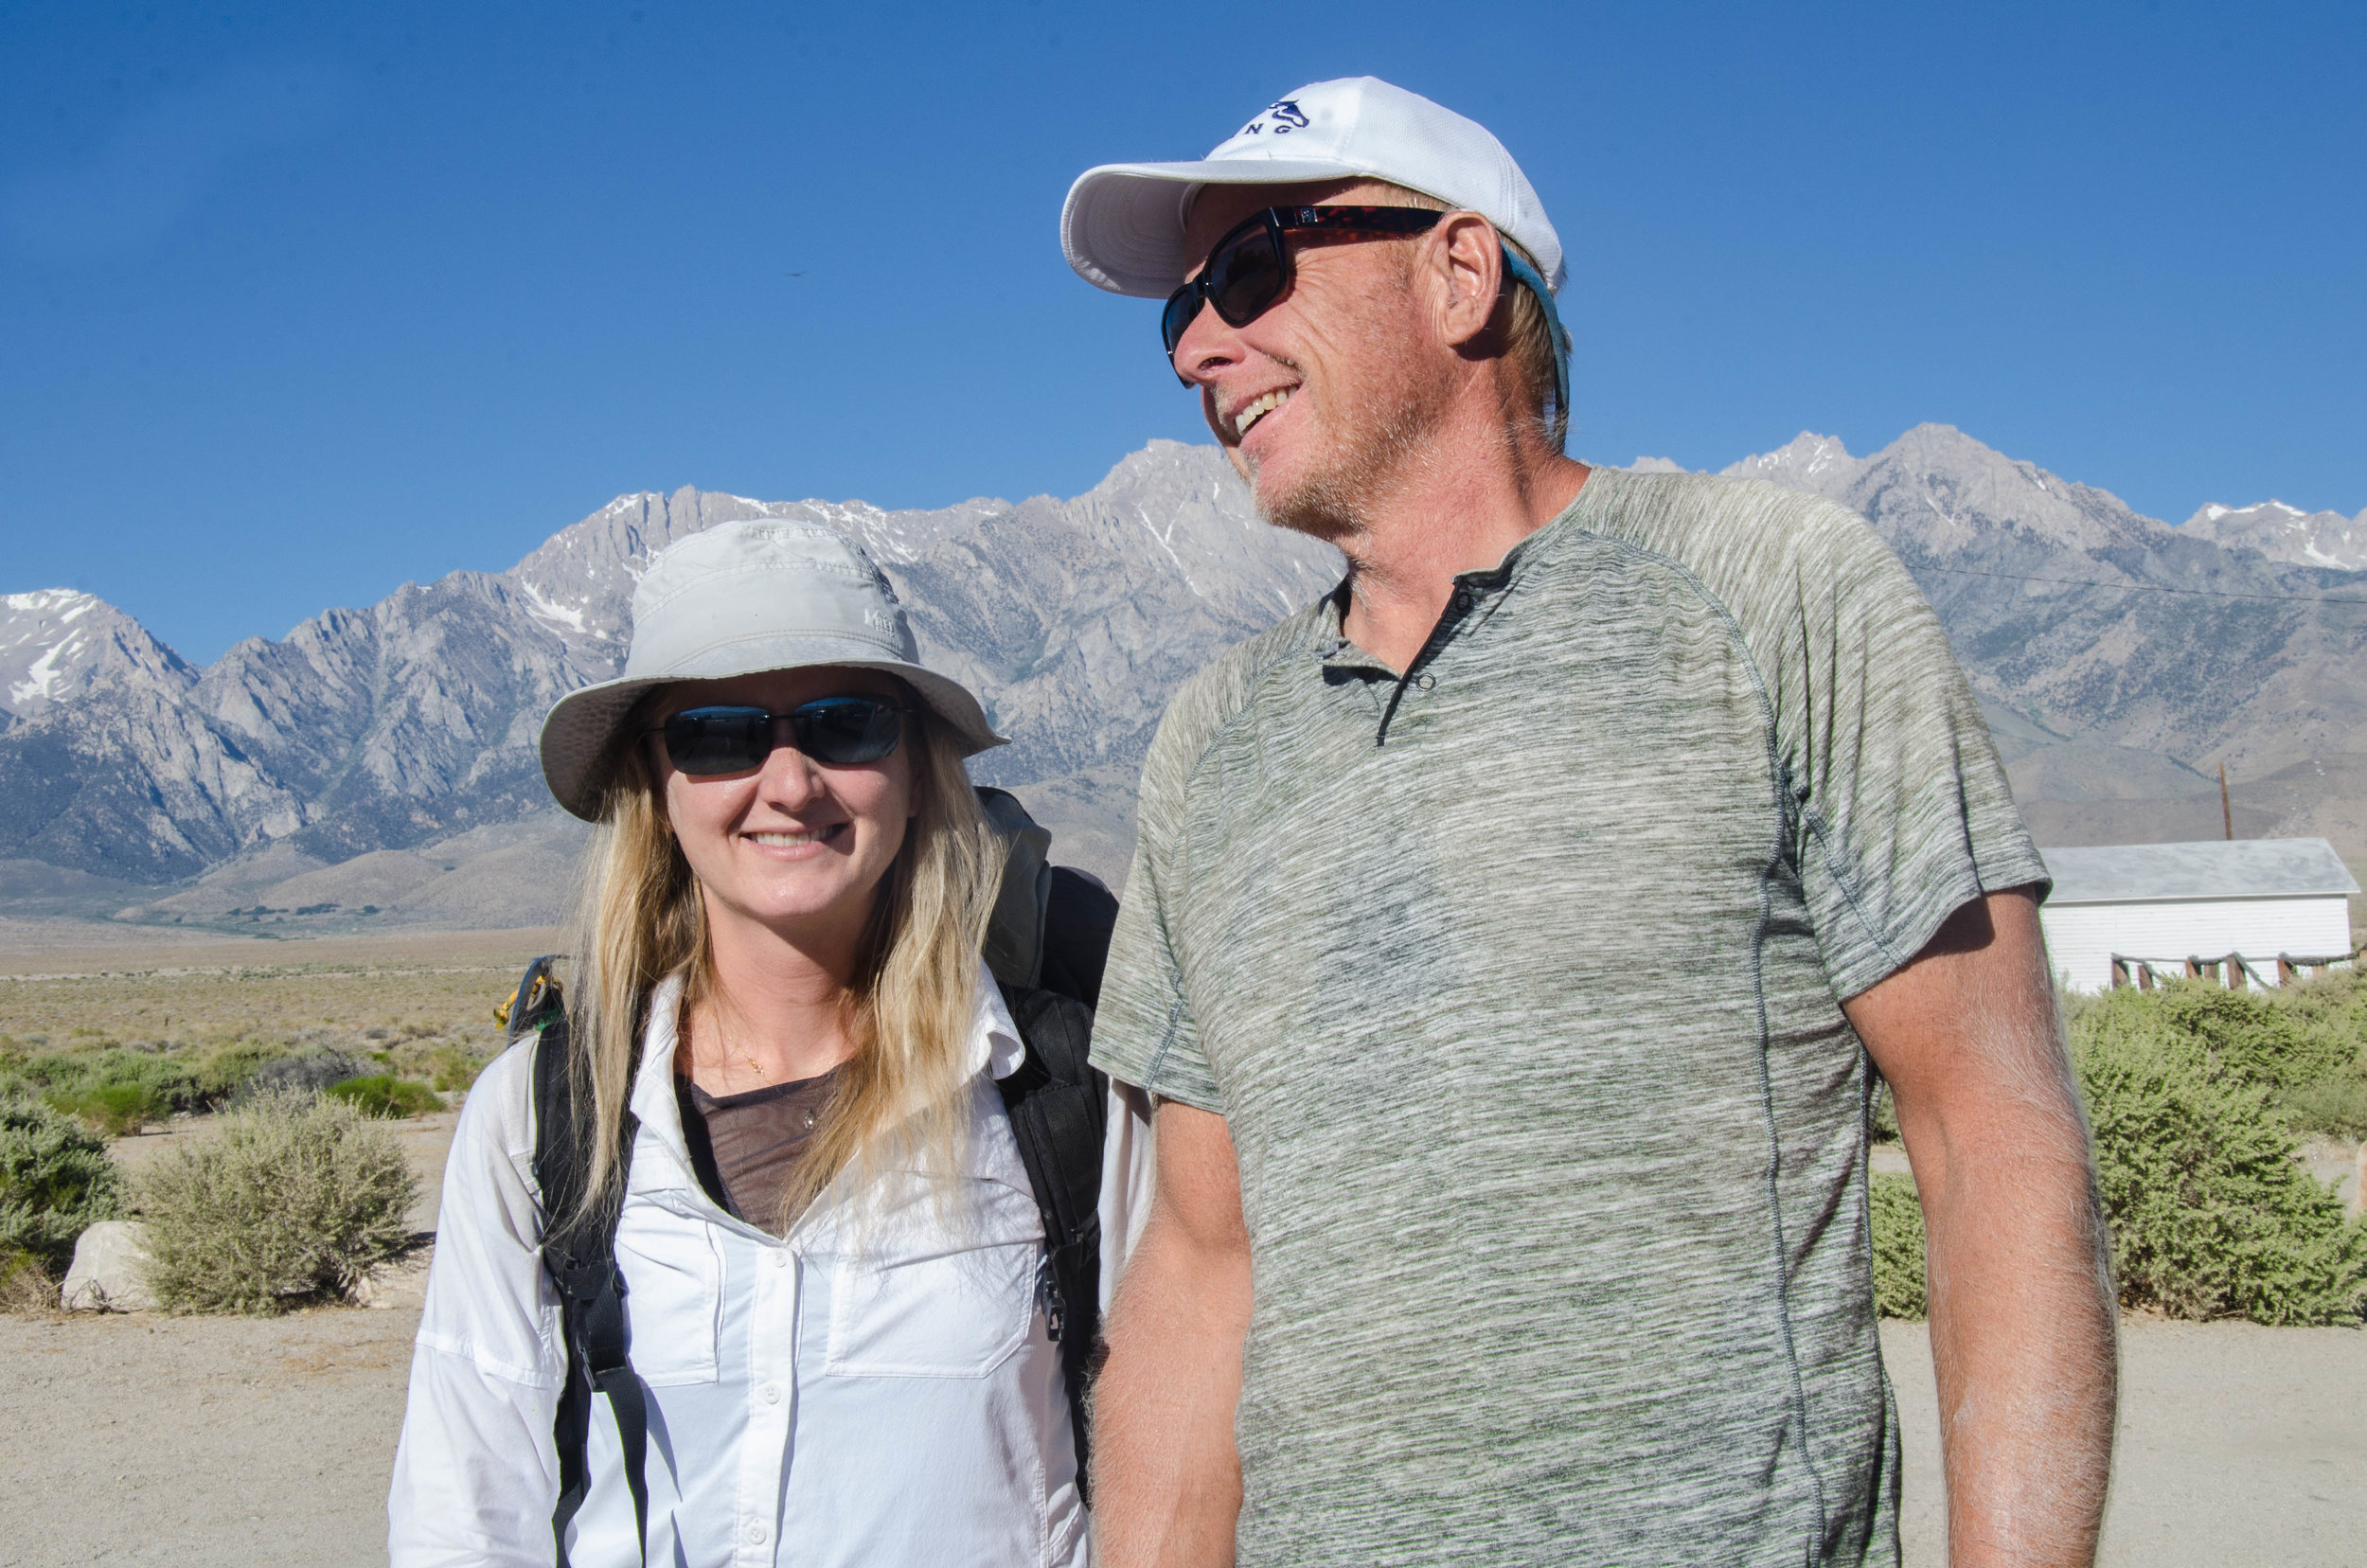 Katherine and Bob celebrating their Honeymoon on the High Sierra Trail